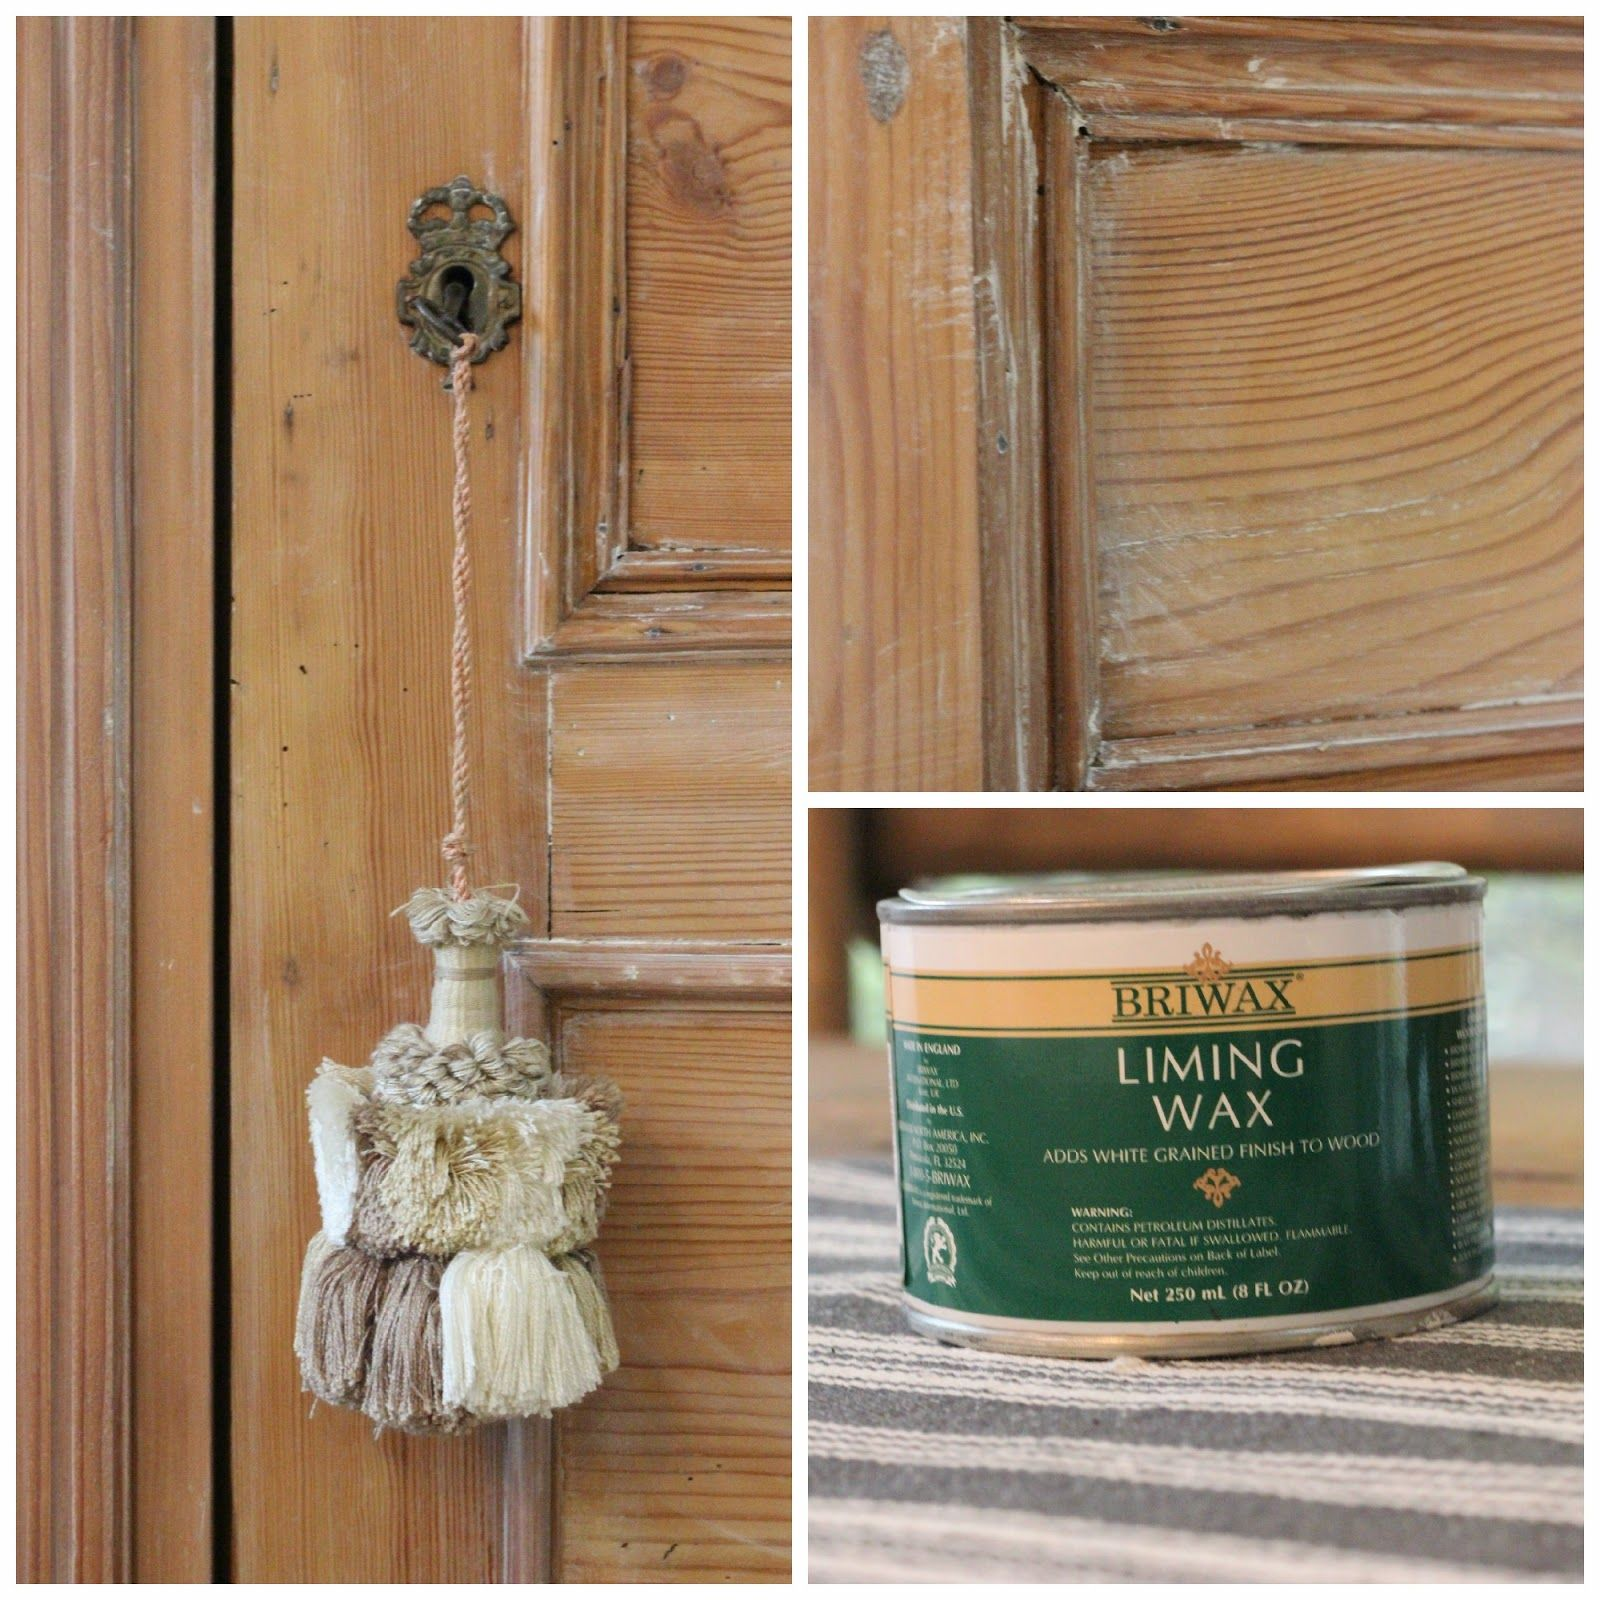 Forever*cottage   How To Use Liming Wax On Pine Furniture Or Doors For That  English Antique Look. My Pie Safe Made By My Grandfather As A Wedding For  Us ...